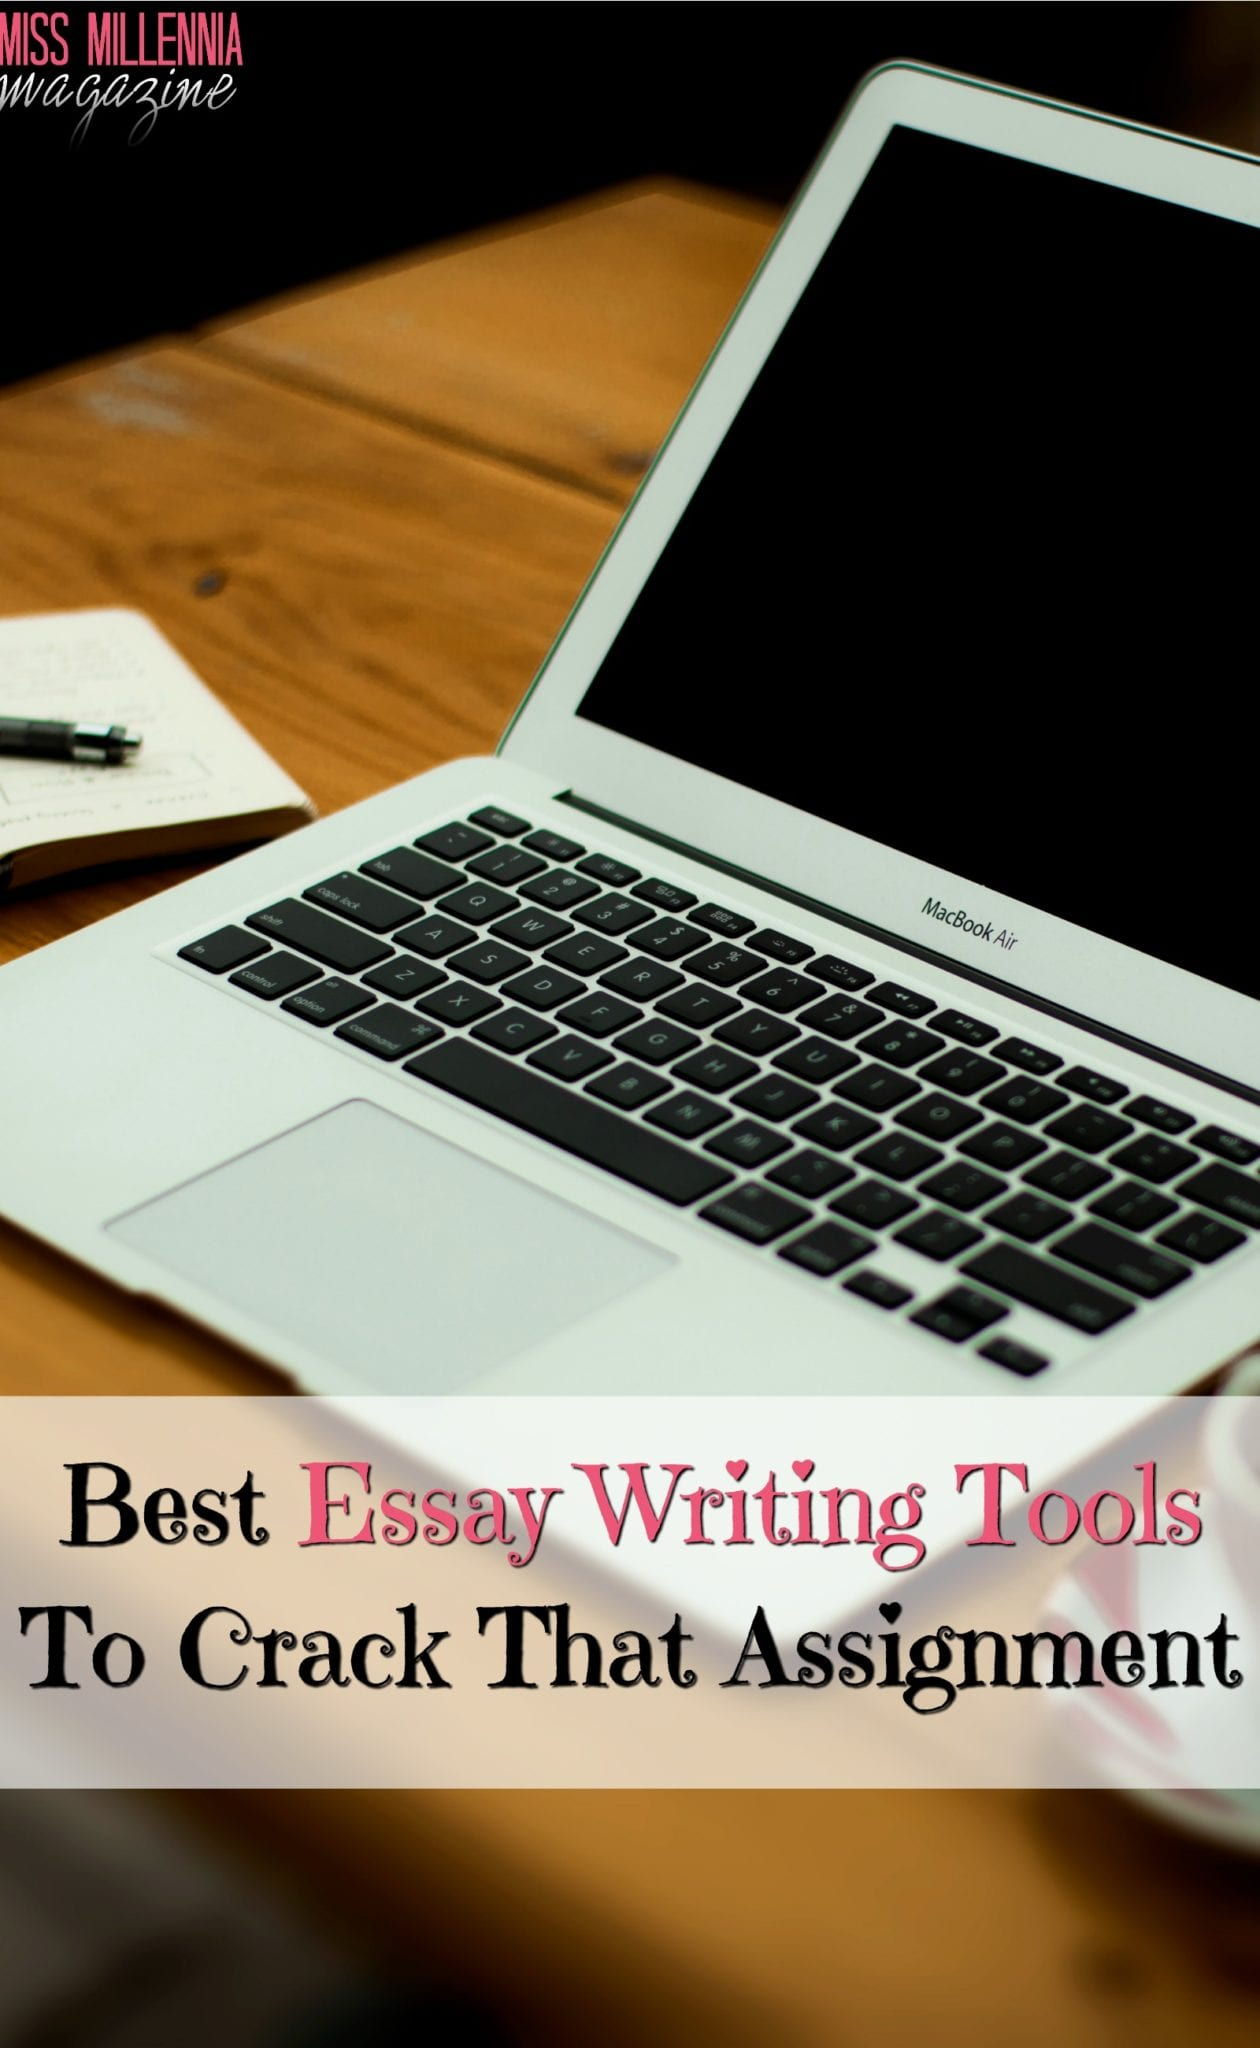 Essay writing tools